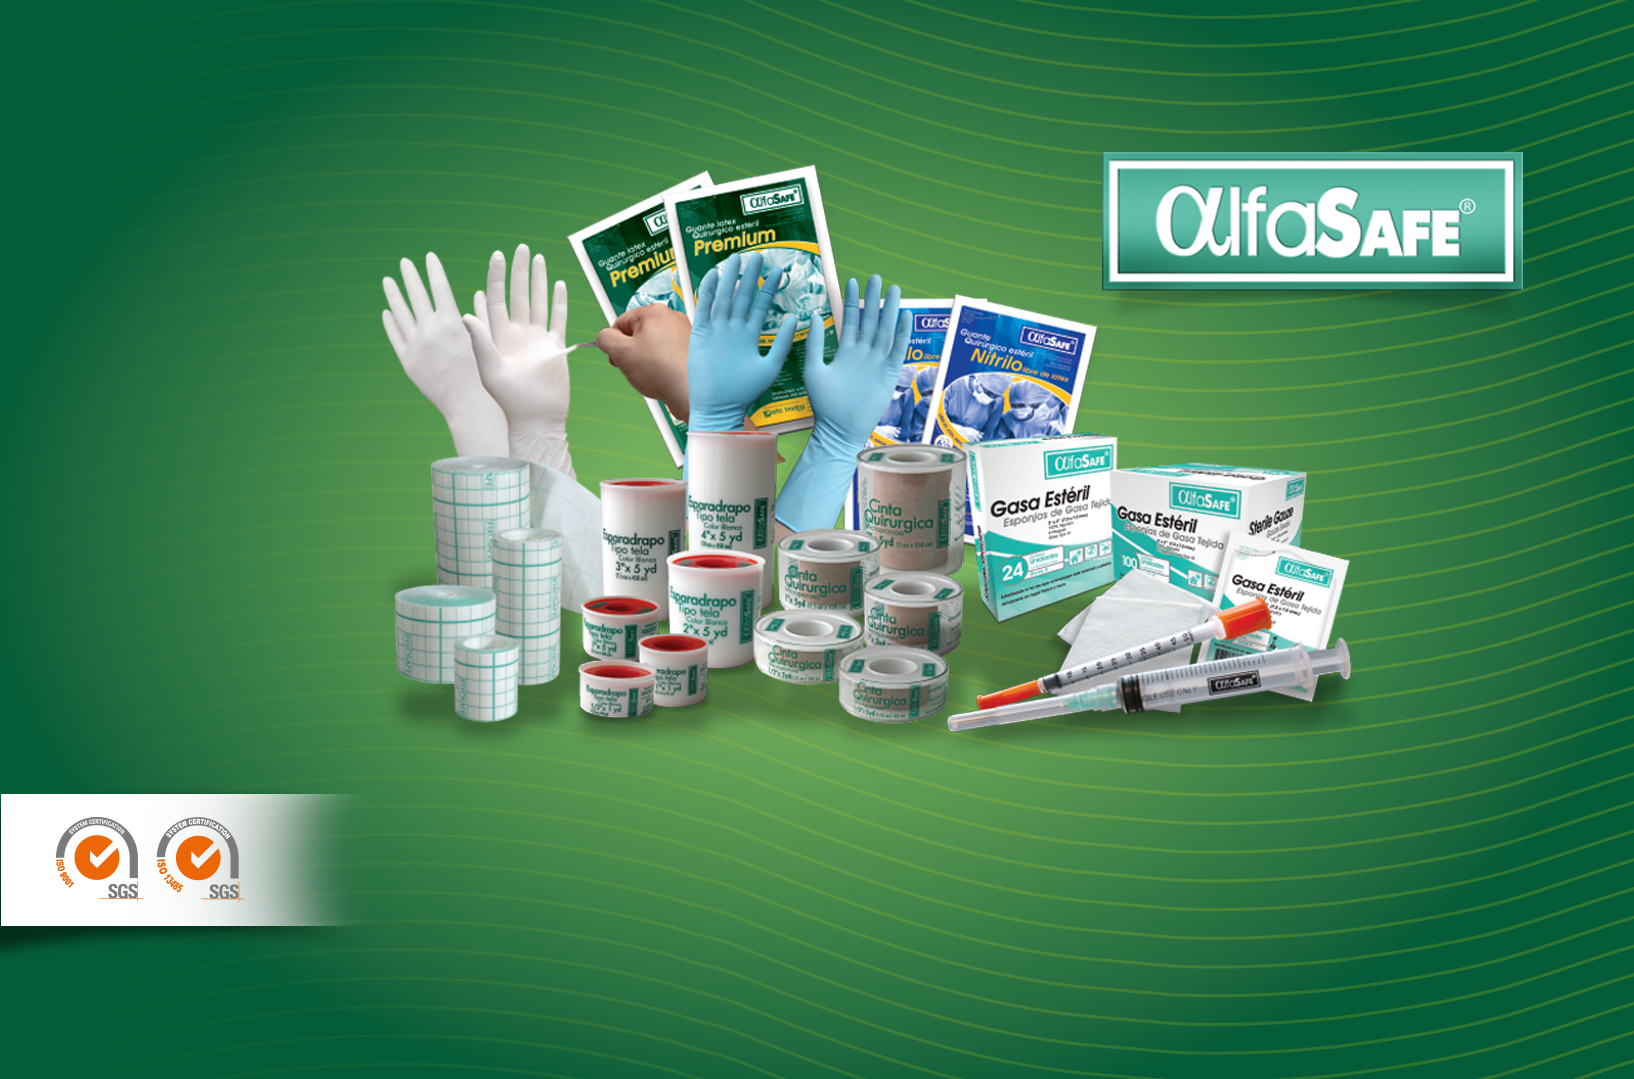 AlfaSafe – Health Care Products